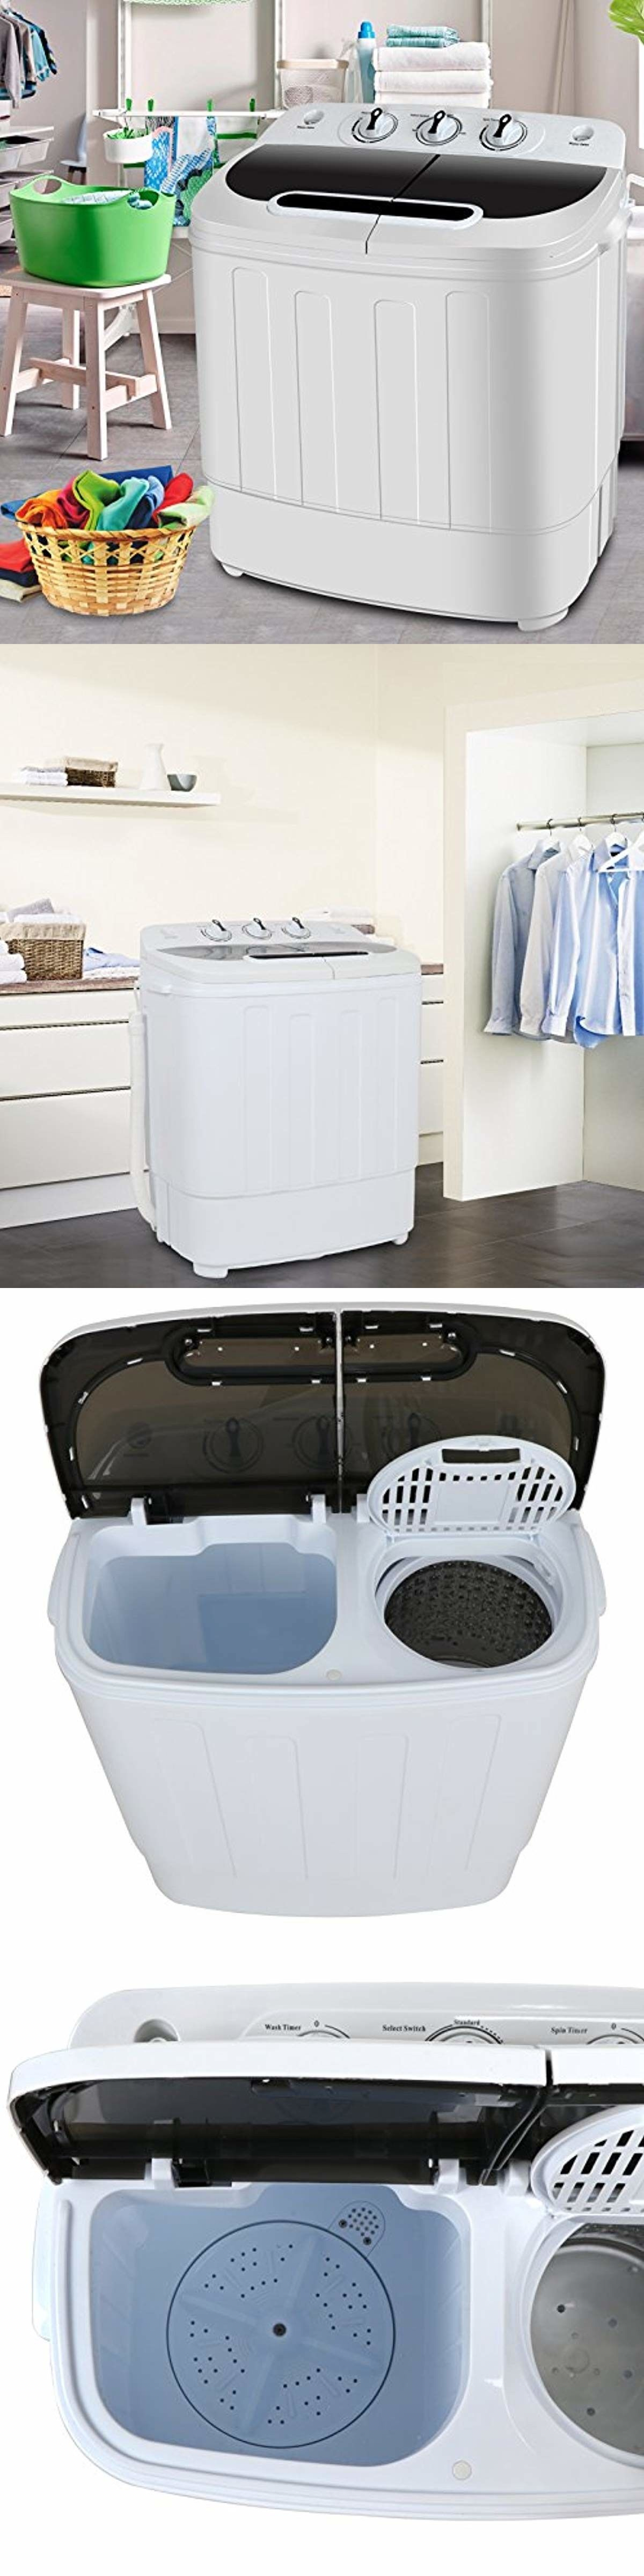 Washing Machines 71256: Super Deal Portable Compact Mini ...